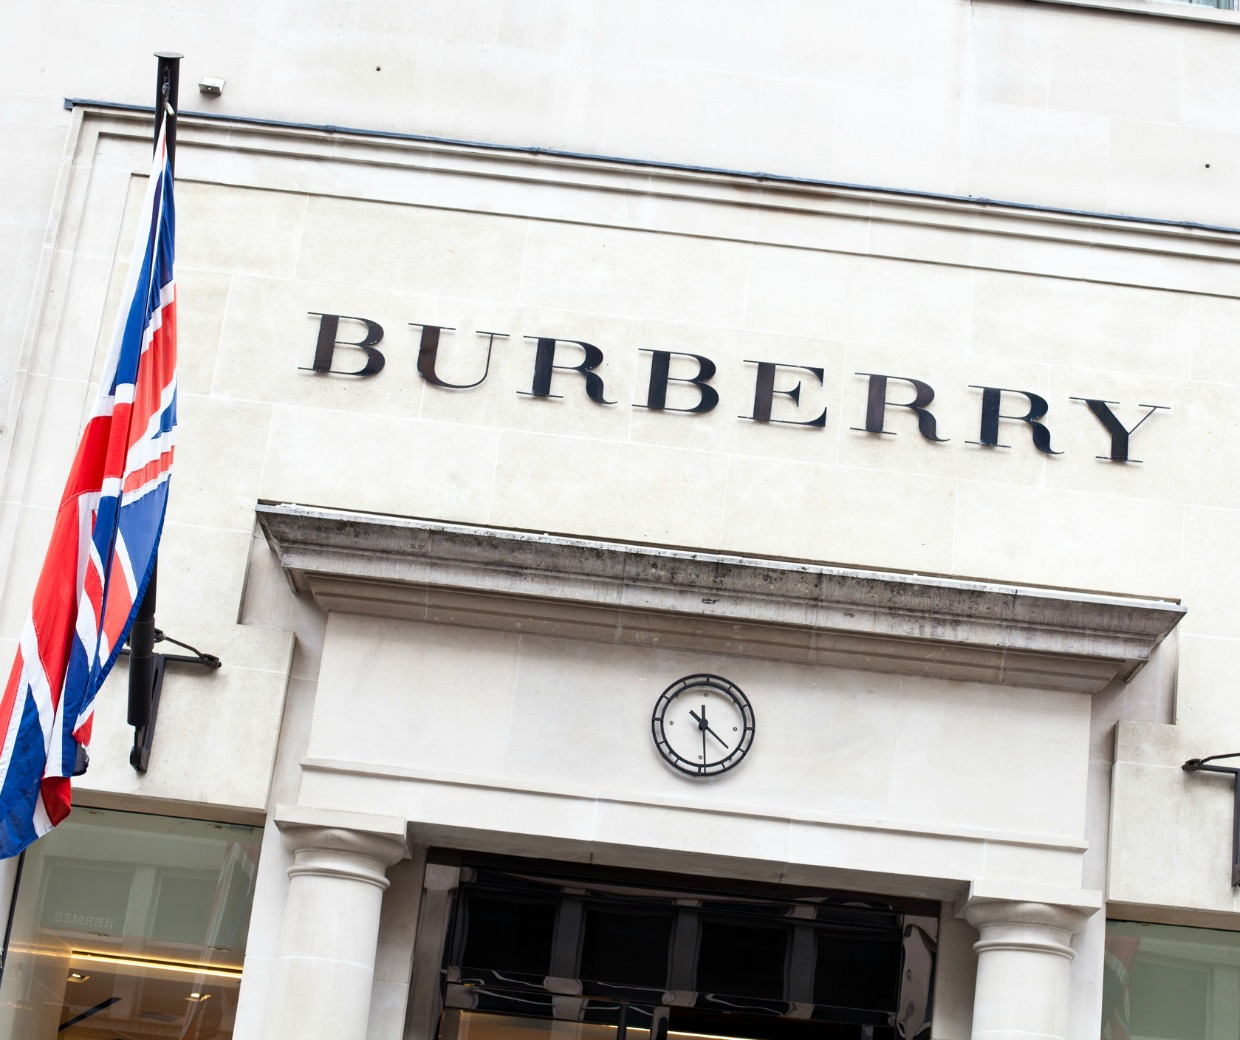 burberry marketing If you have any queries or if we can be of any further assistance please do not hesitate to contact us by any means preferable to you for your convenience burberry.